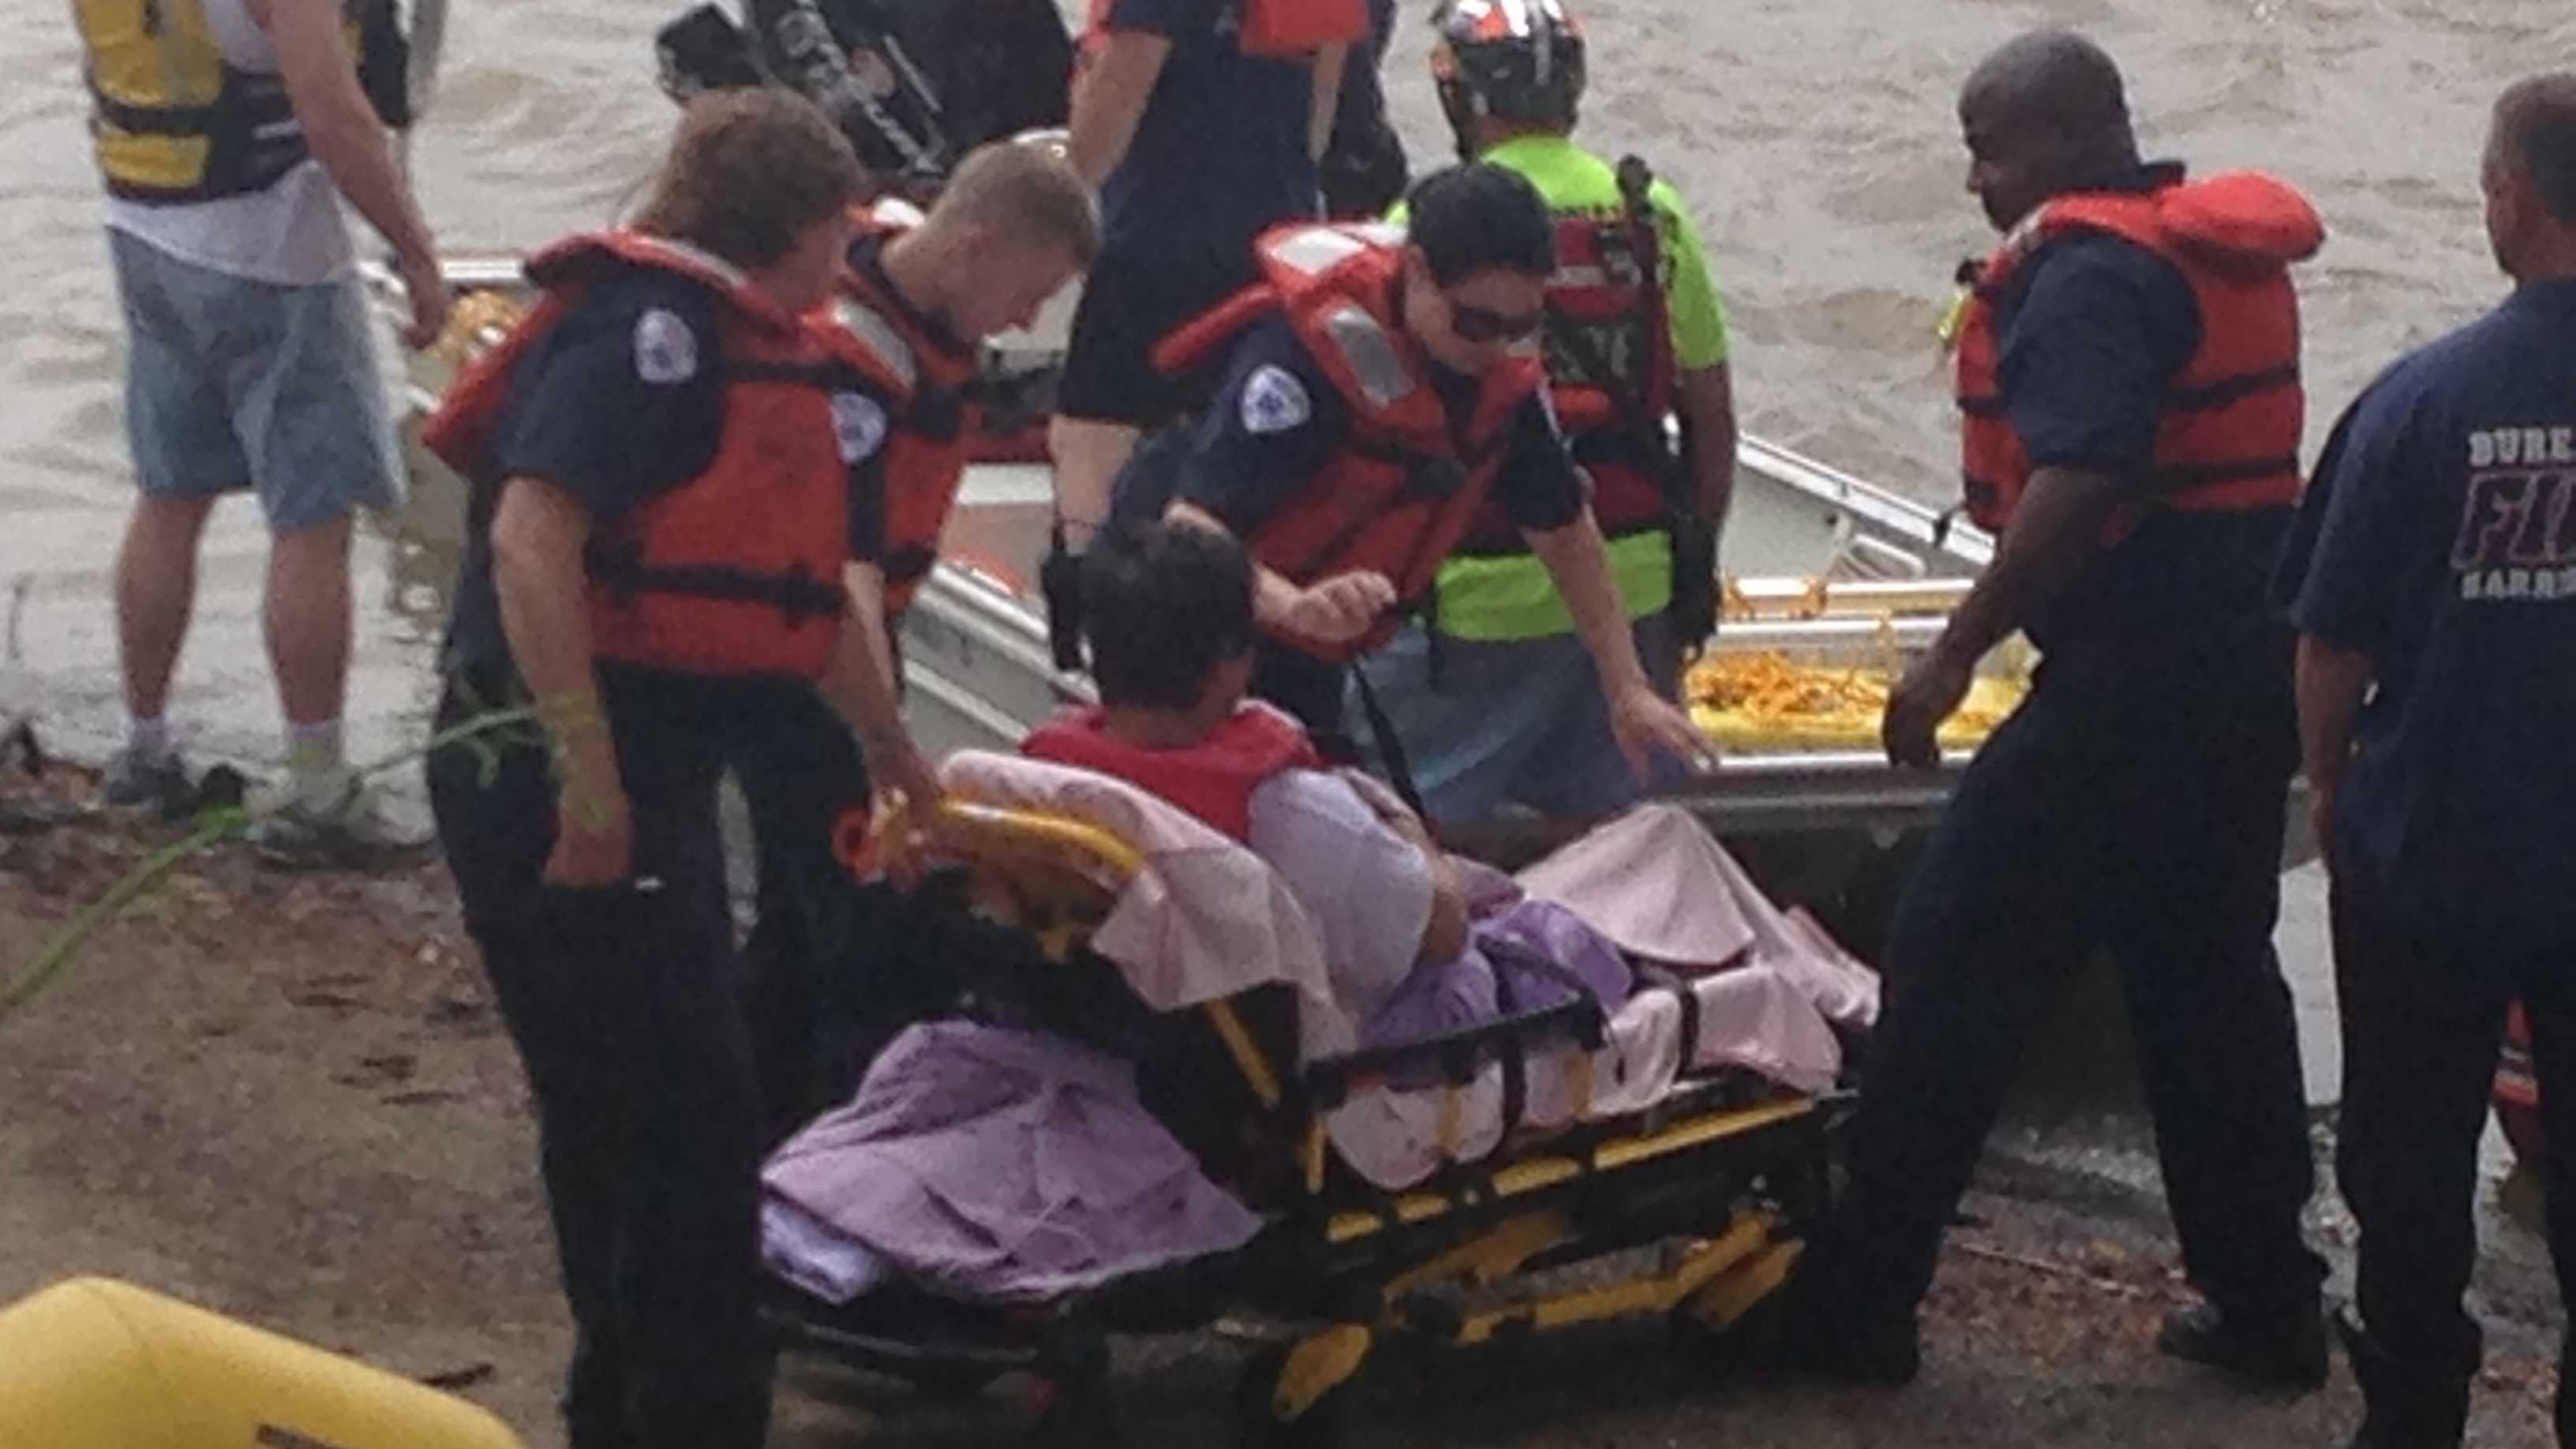 Two kayakers were rescued from the Susquehanna River on Tuesday morning.